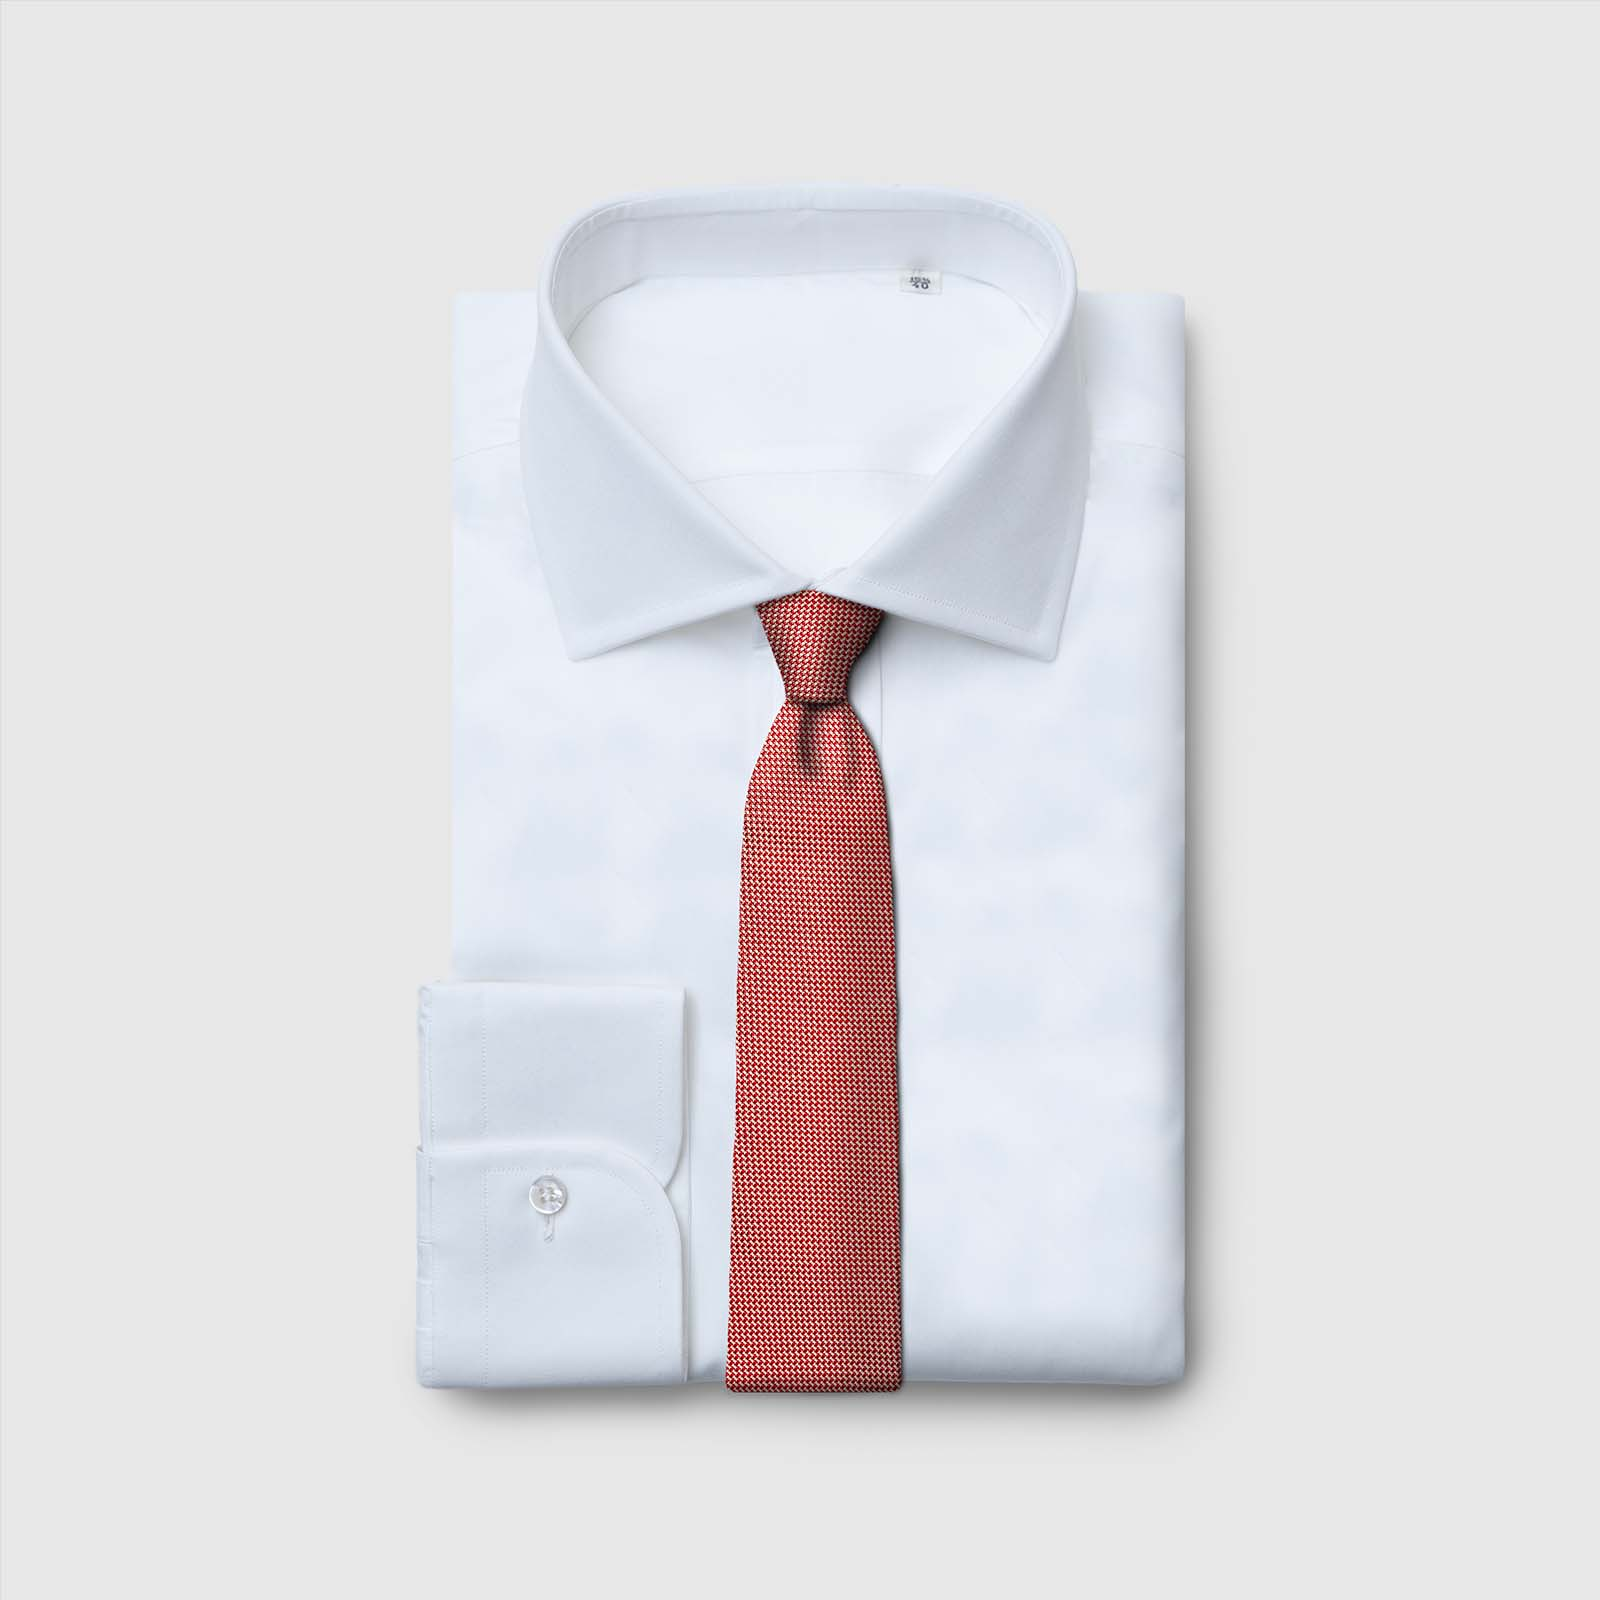 5 Fold Tie with white and red micro-pattern